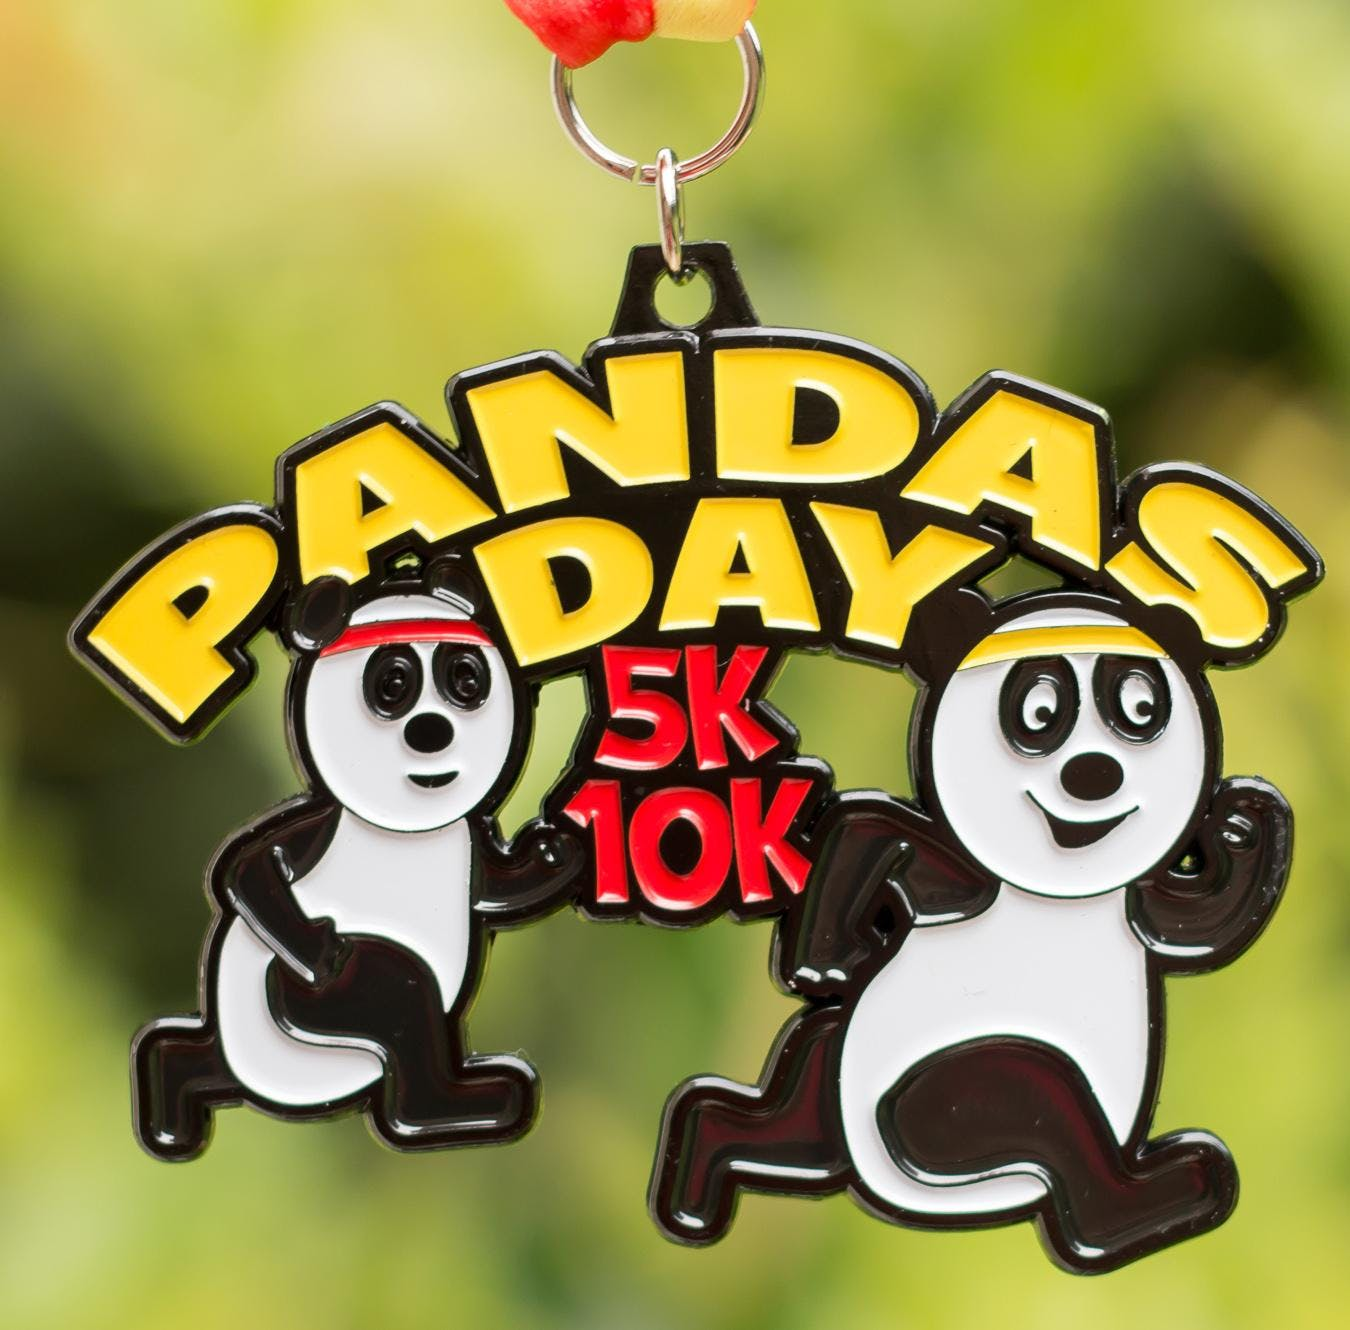 Now Only $10! PANDAS Day 5K & 10K - Chandler